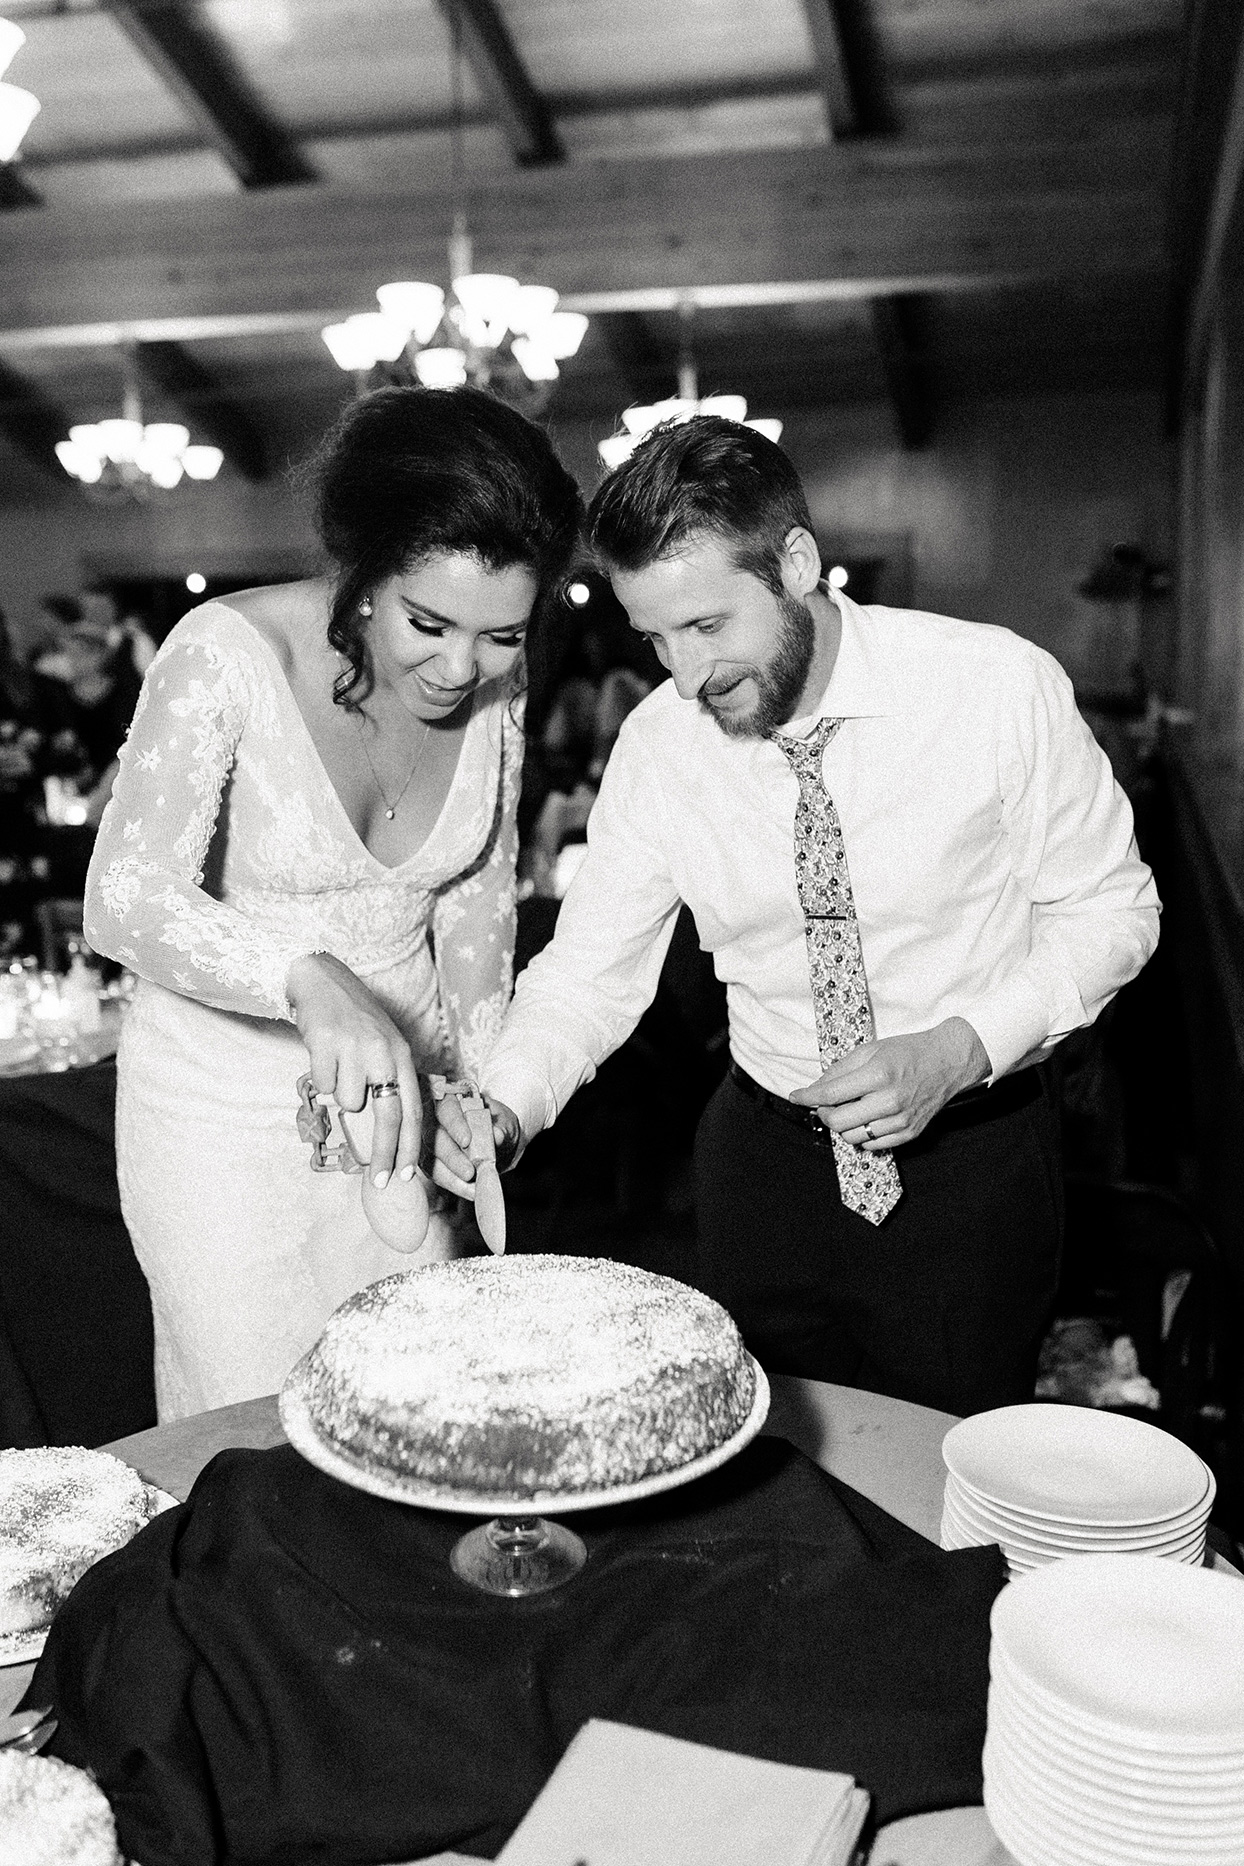 bride and groom cutting wedding cake at reception